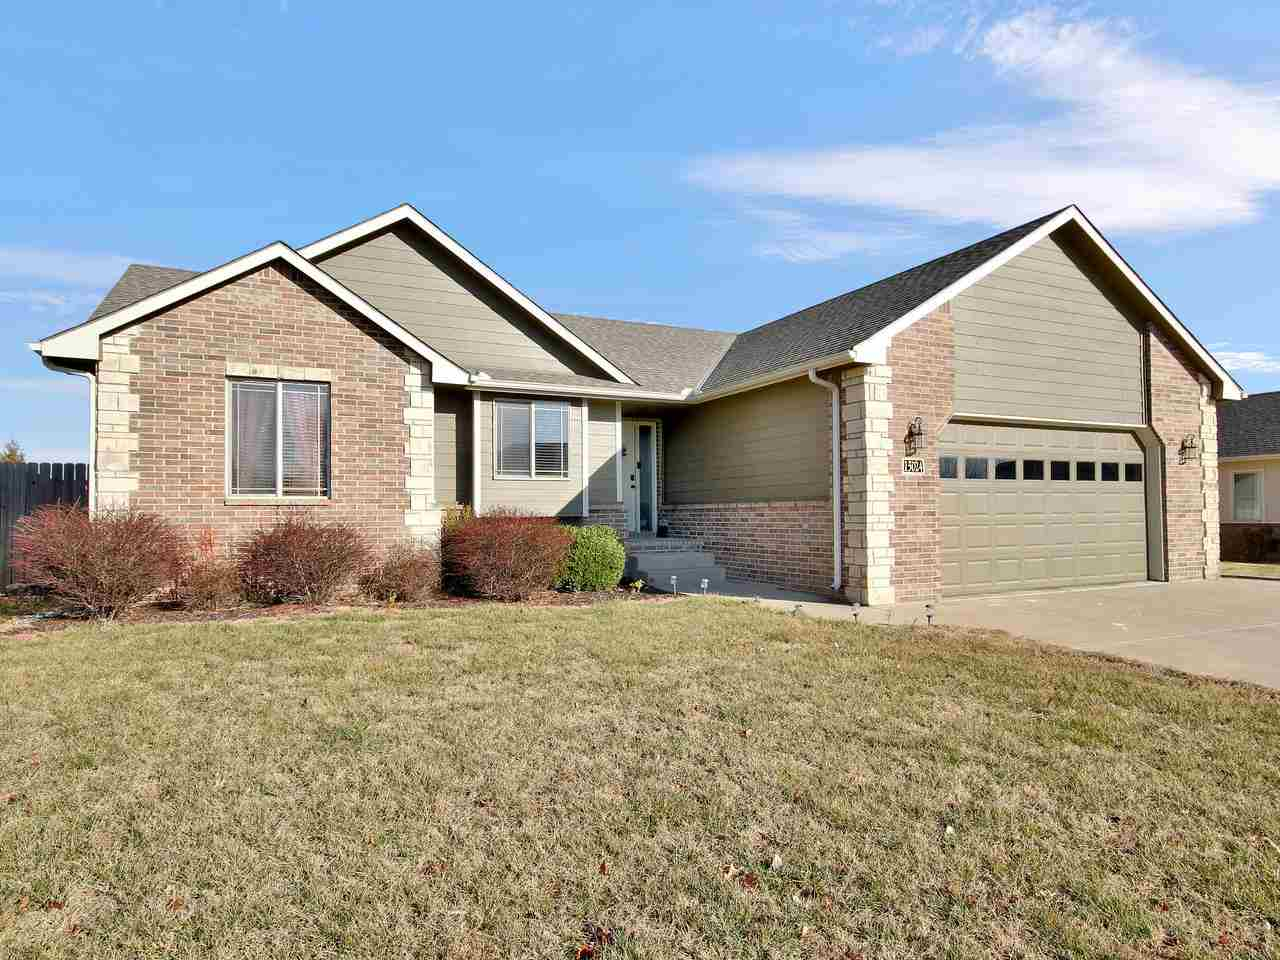 Make yourself at home here in Springdale Lakes. This beautiful home has all the desired upgrades off